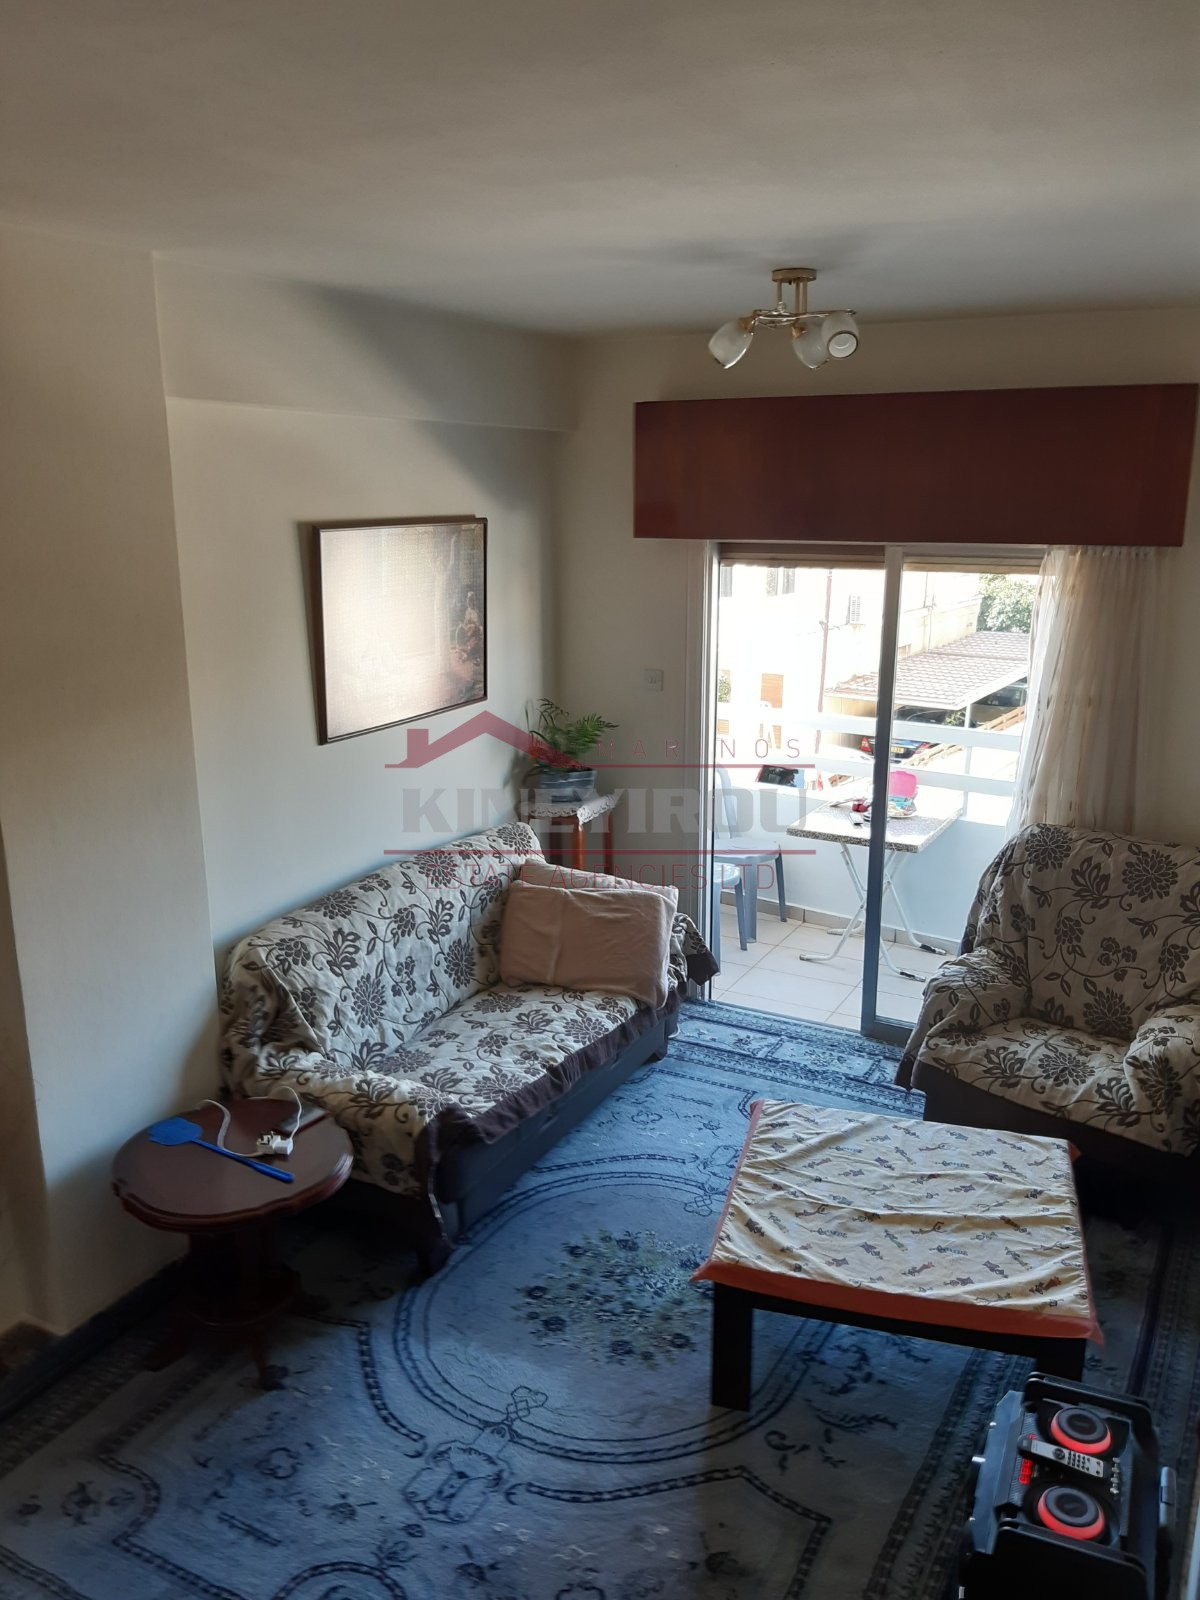 3 Bedrooms Apartment in Limassol City Center